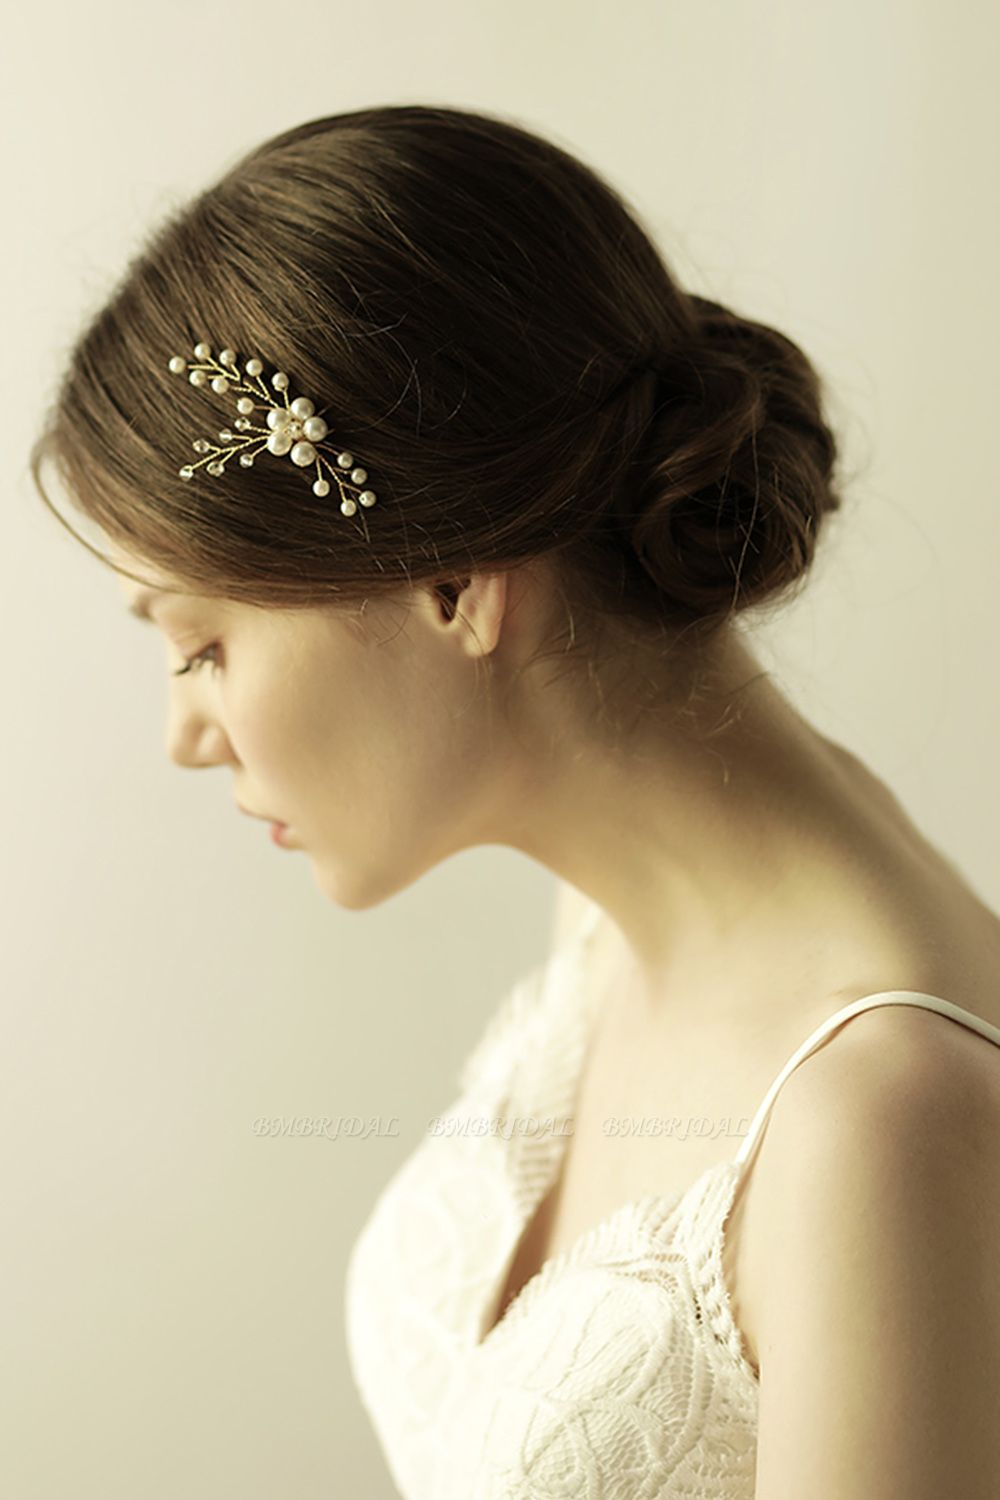 Pretty Alloy Daily Wear Hairpins Headpiece with Imitation Pearls